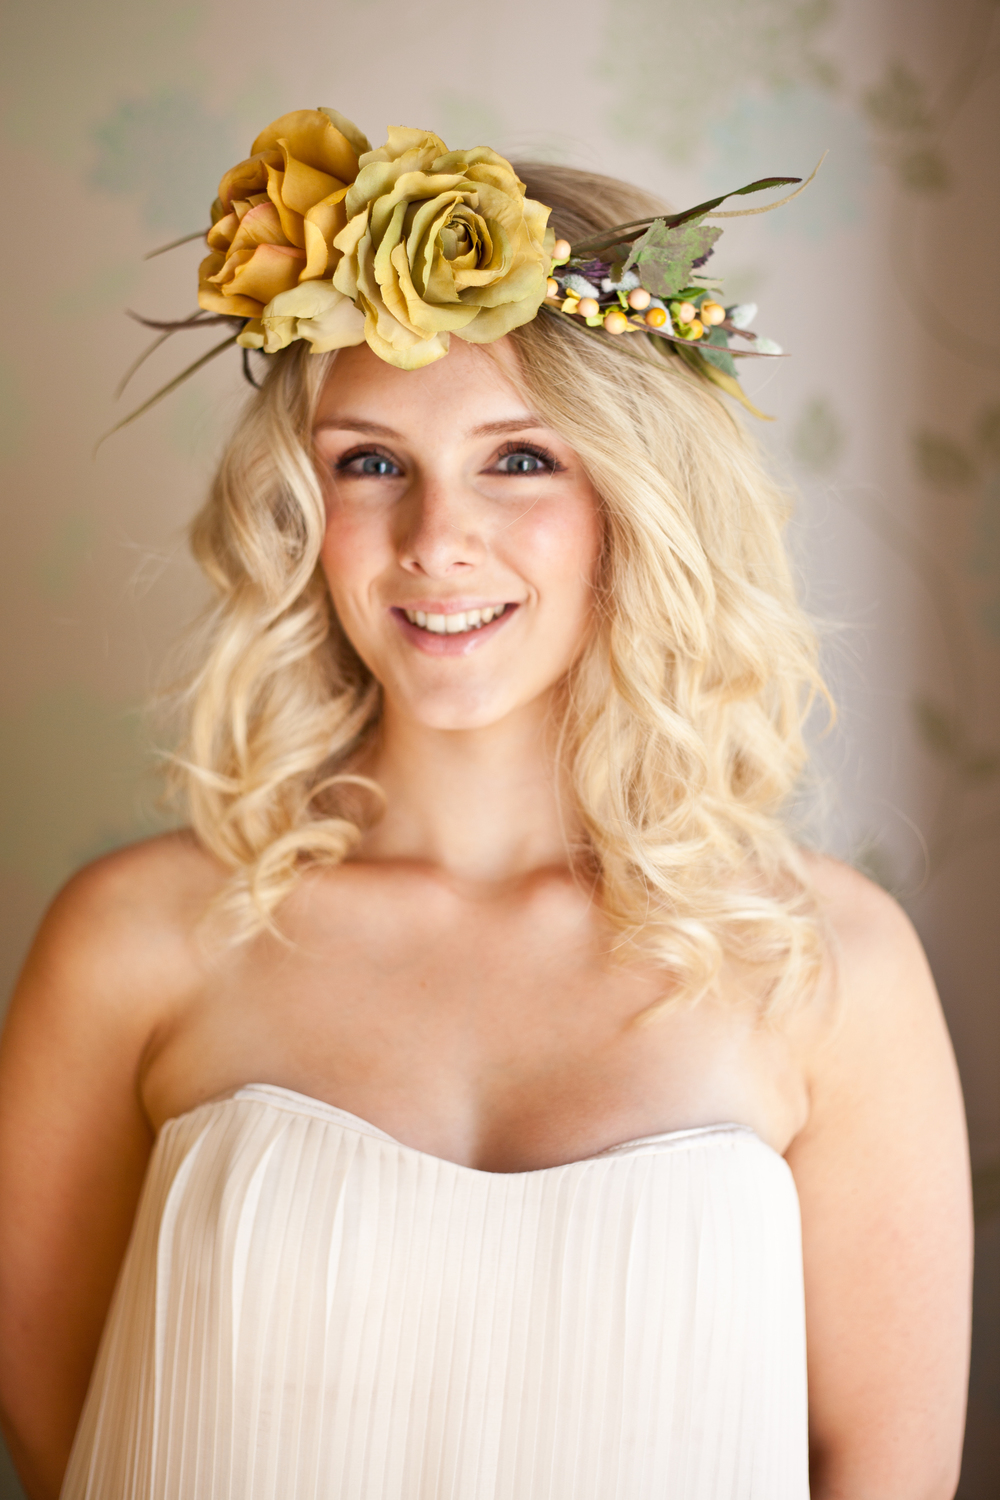 Lovehair floral headbands-051.jpg